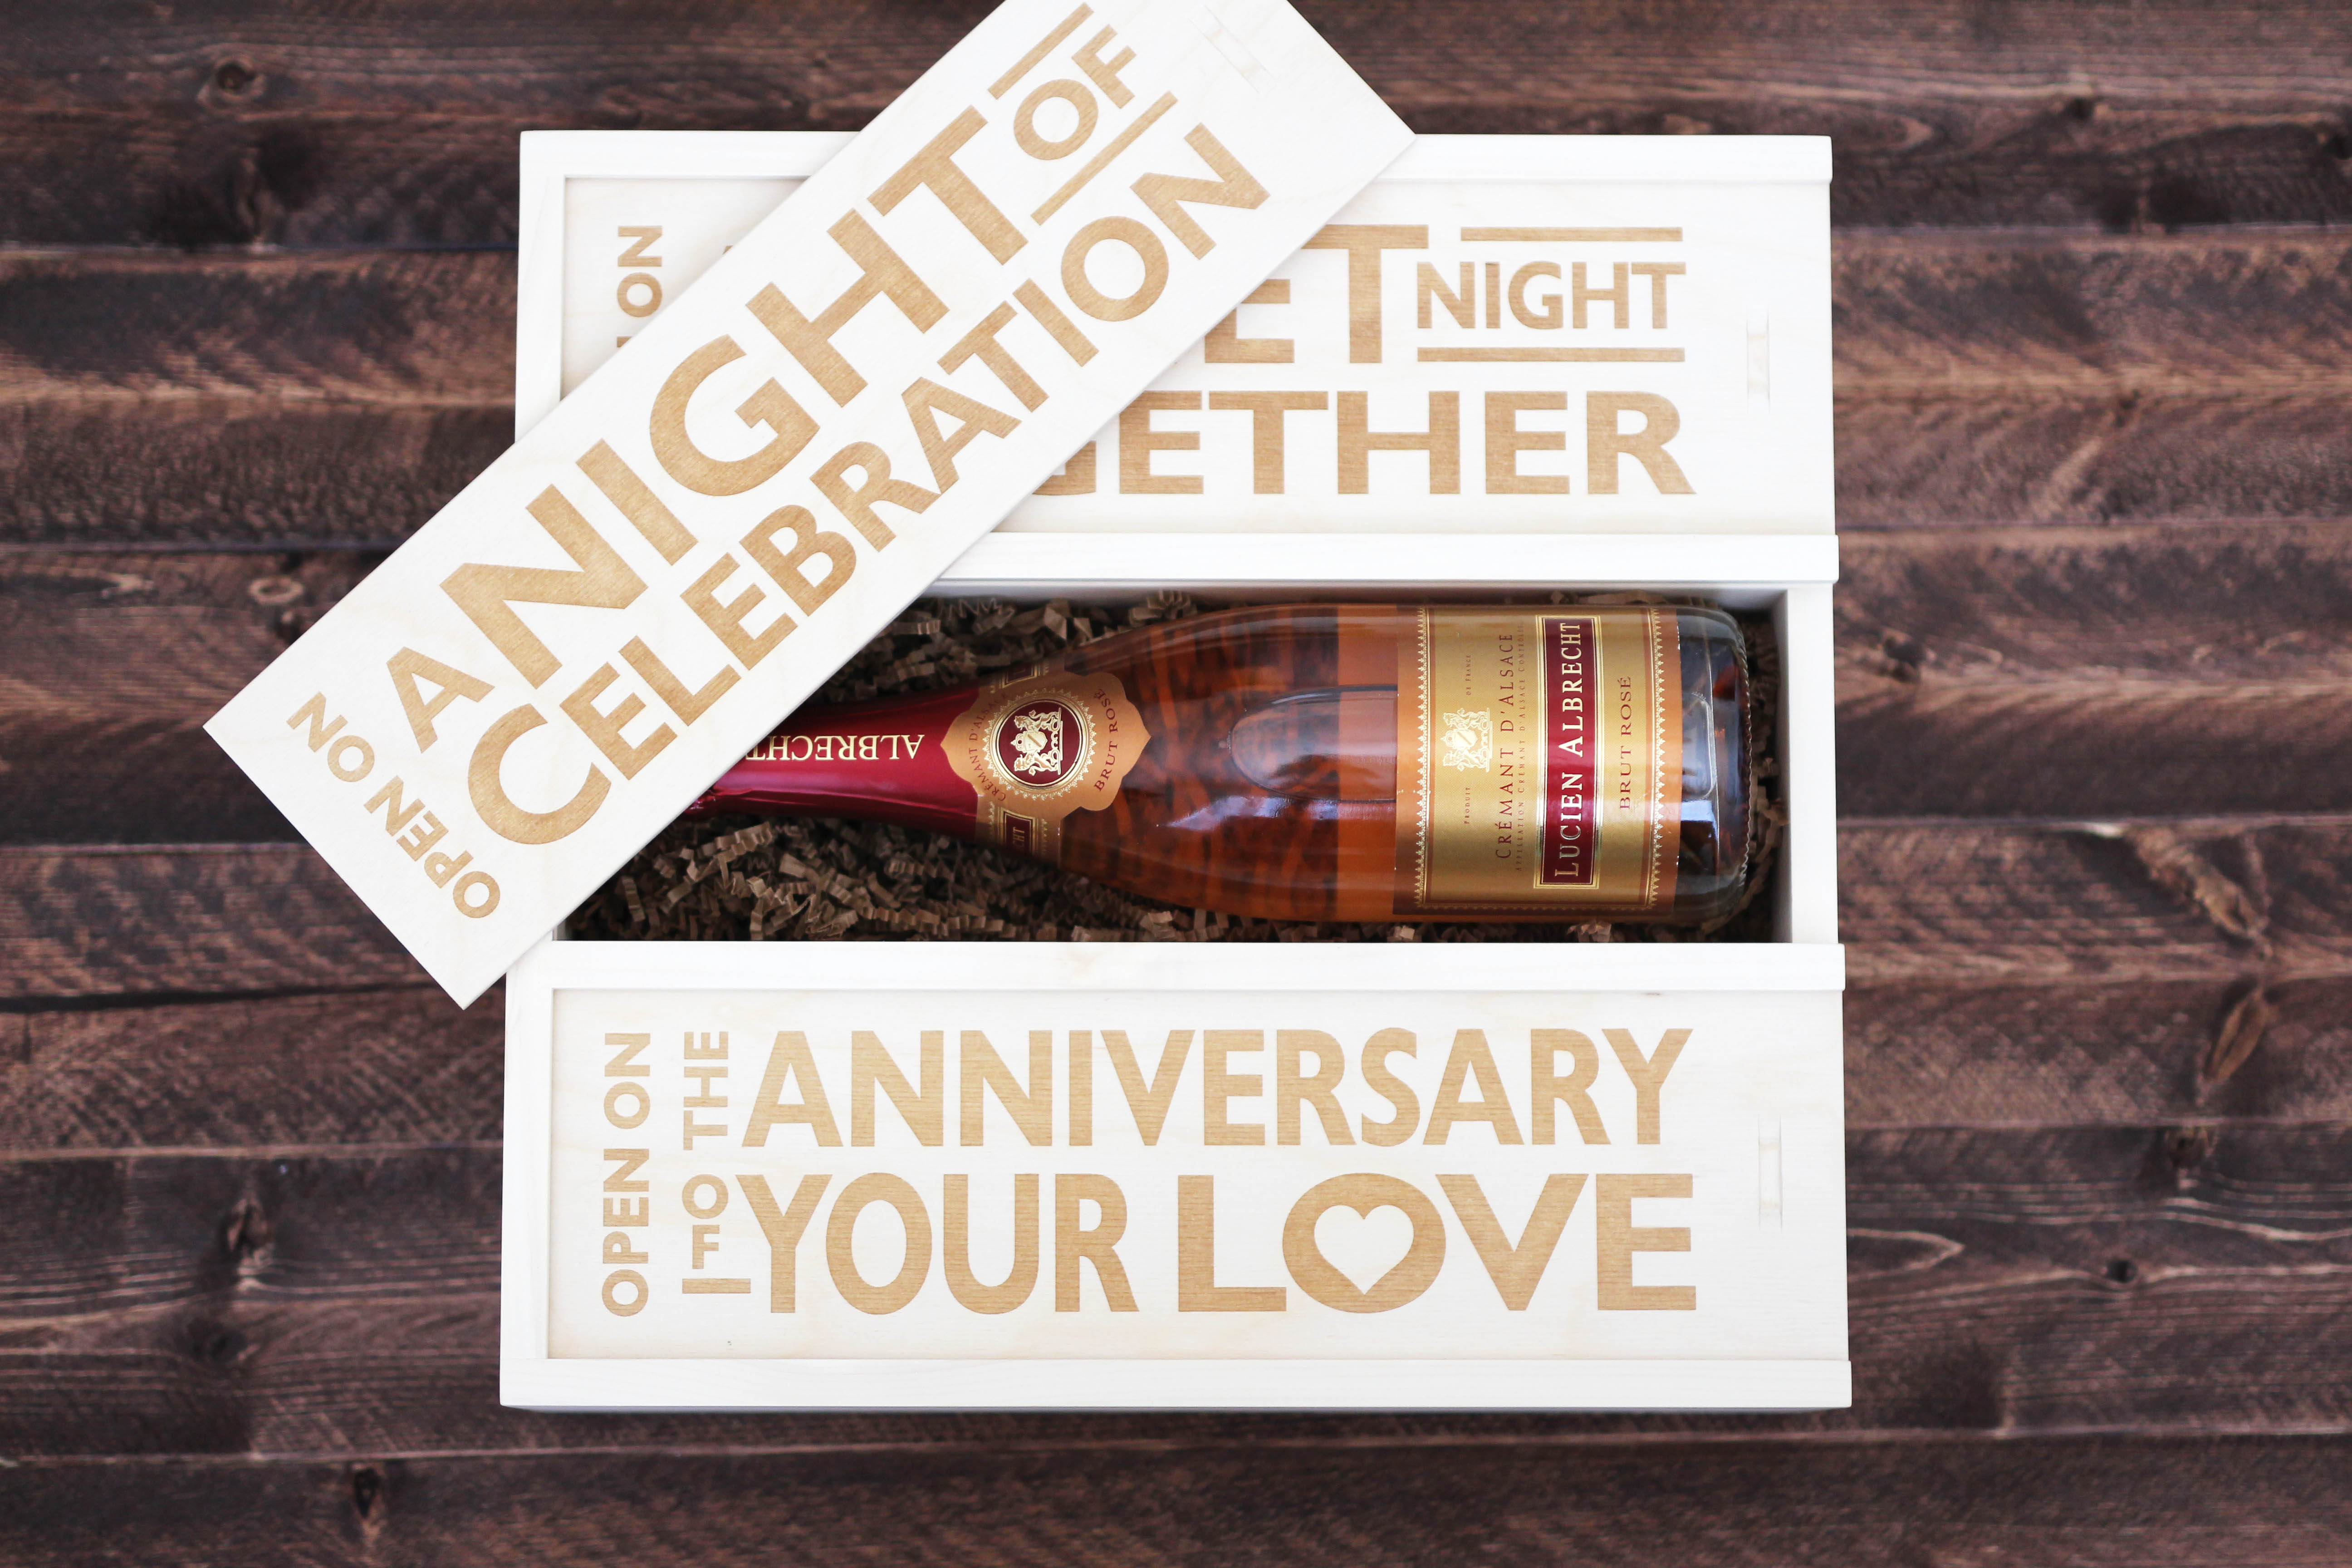 Wedding anniversary gift ideas treats and trends